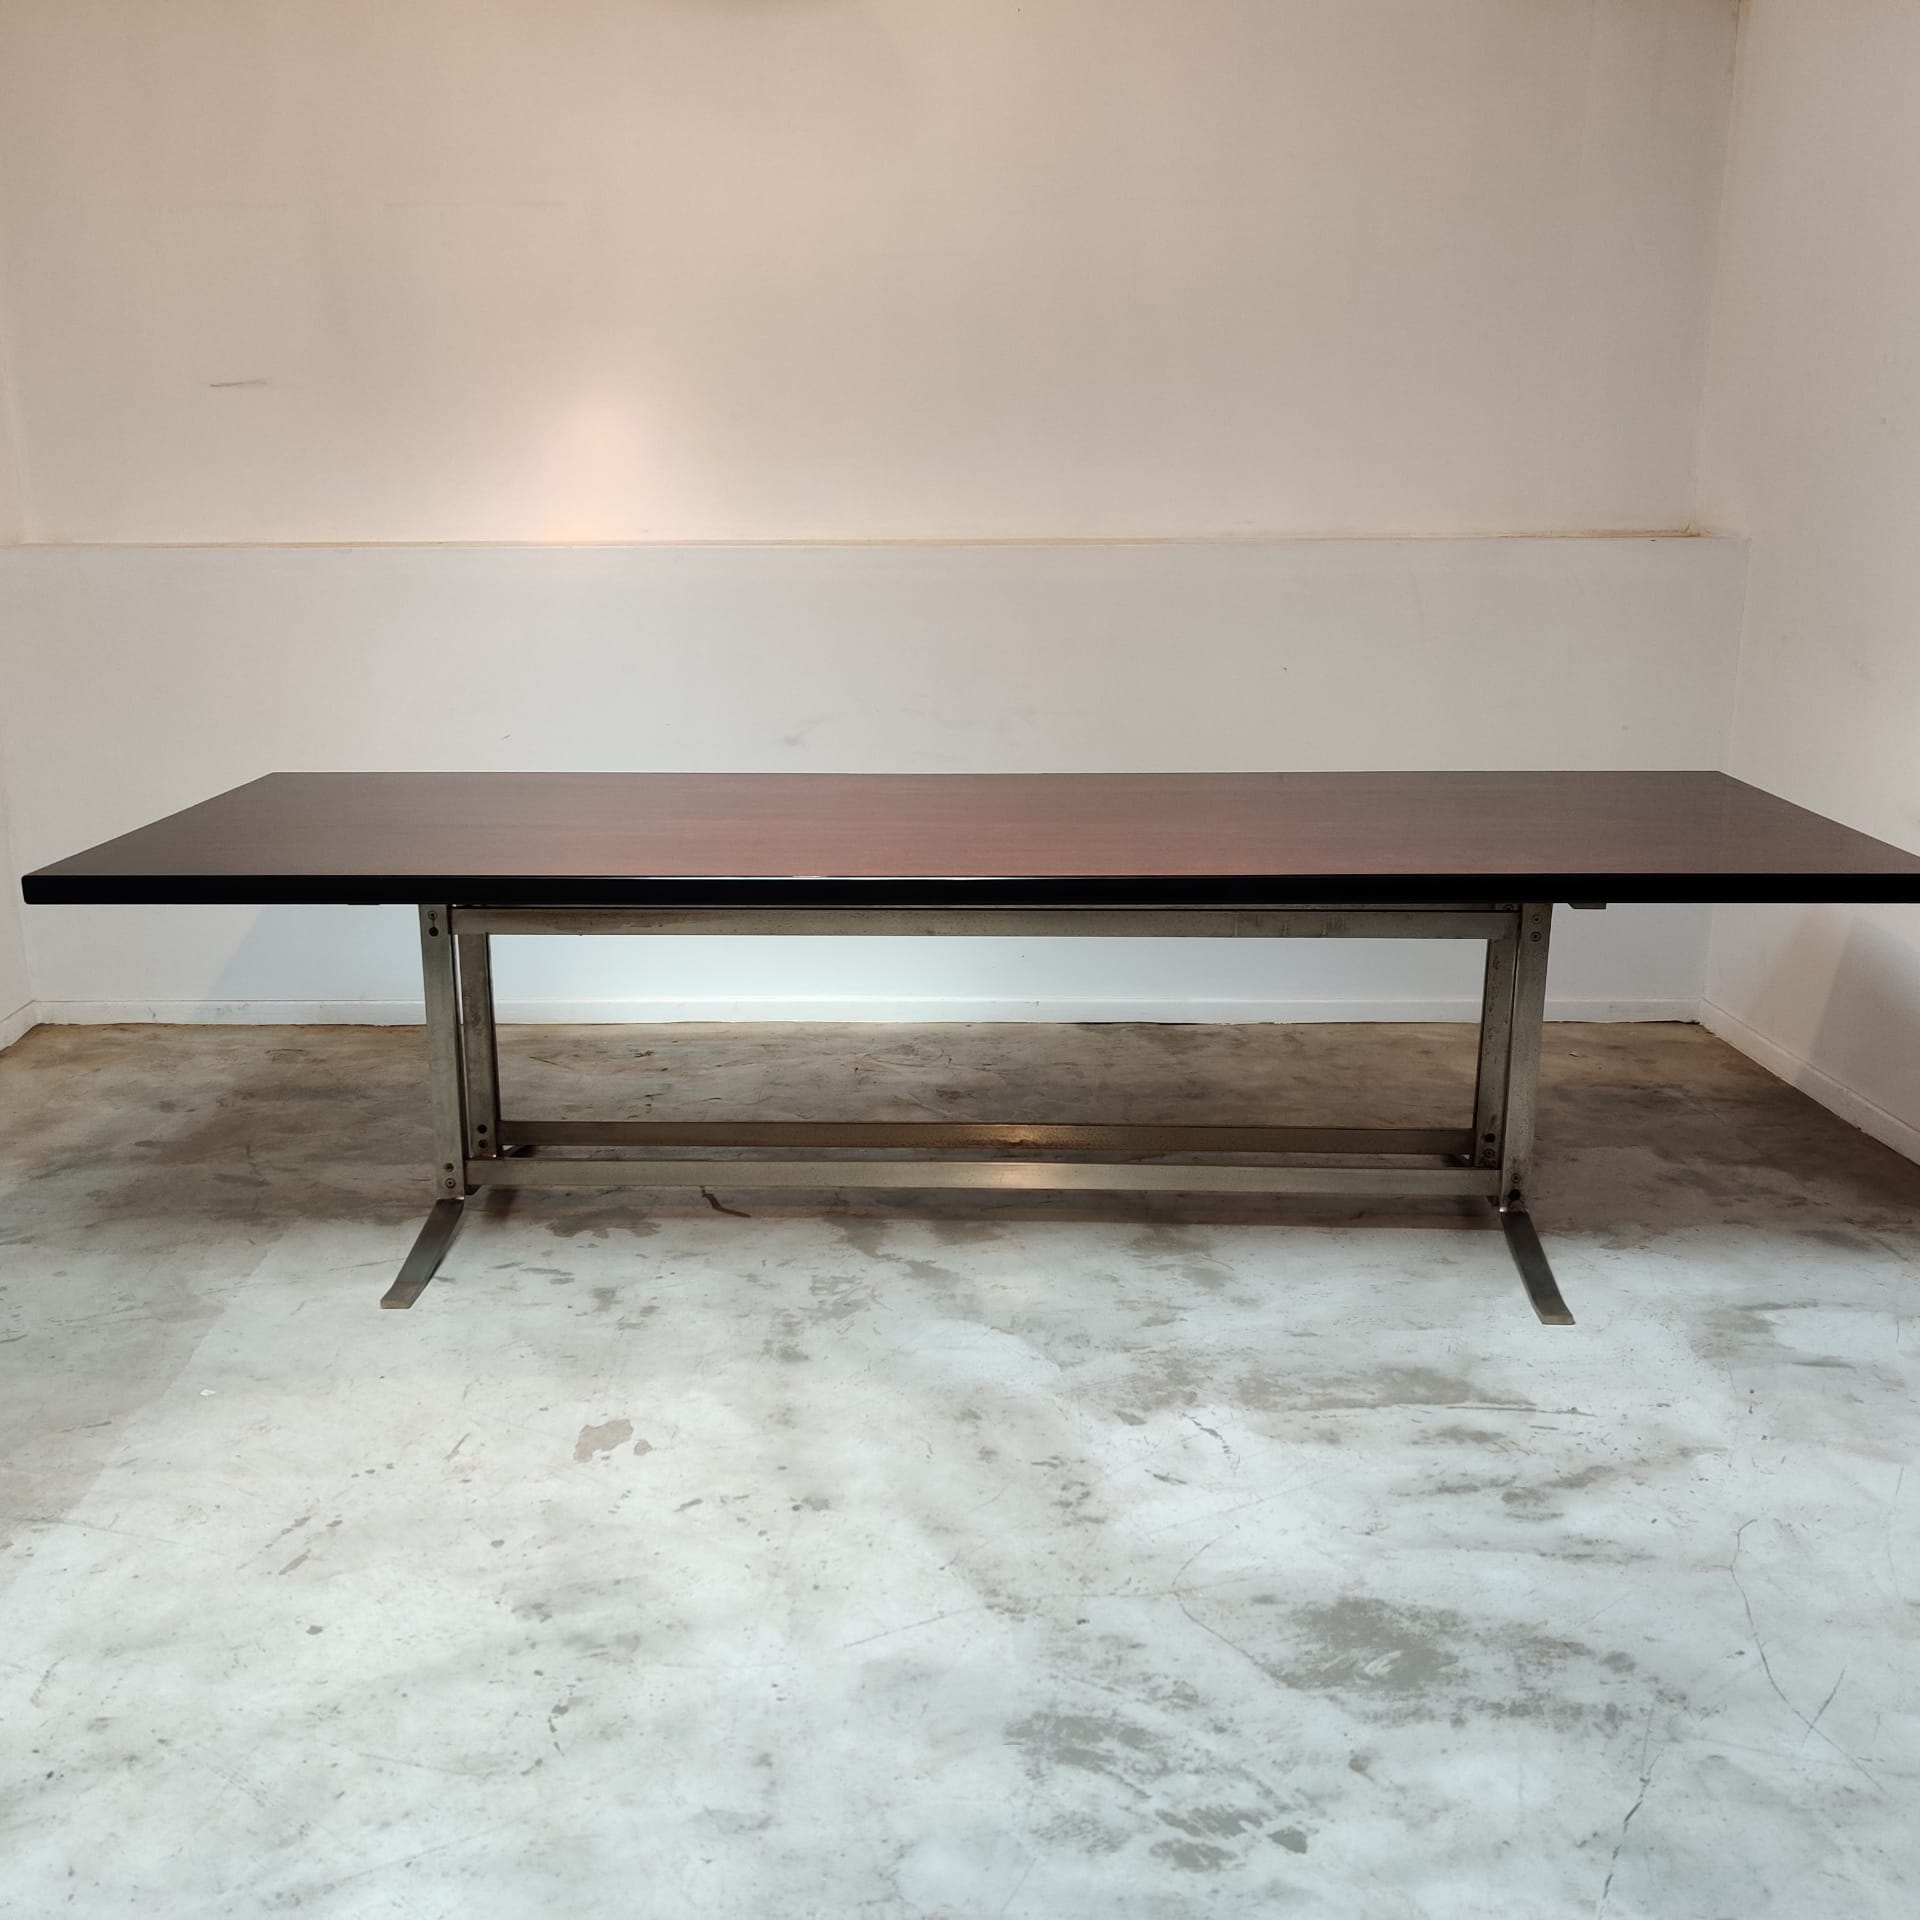 Very large Formanova dining table